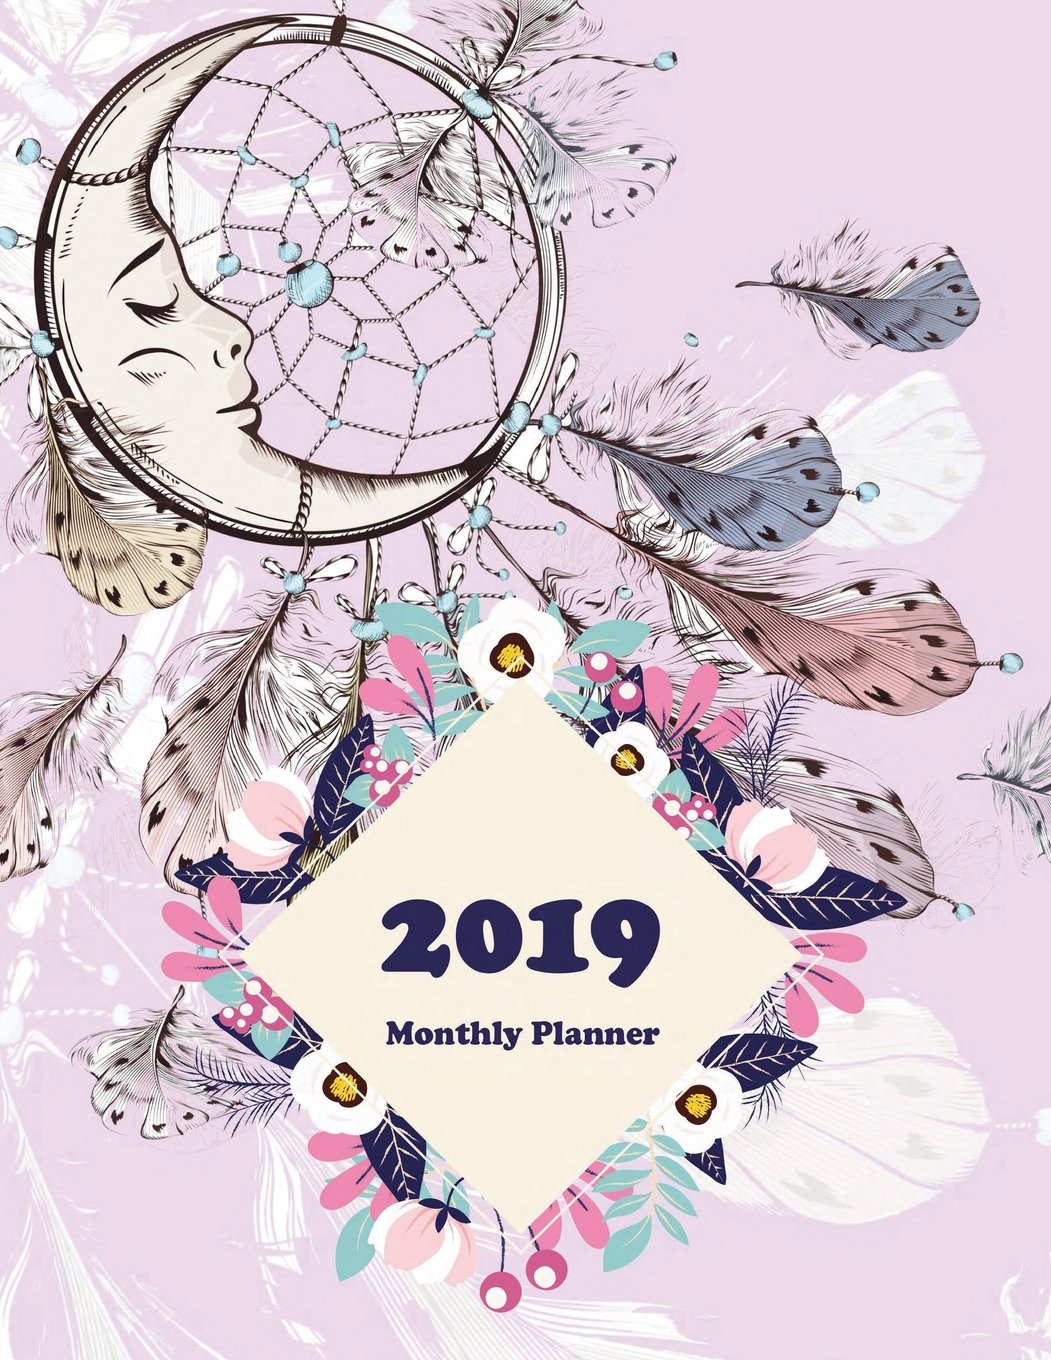 Amazon.com: 2019 Monthly Planner: Pretty Dreamcatcher, Daily ...